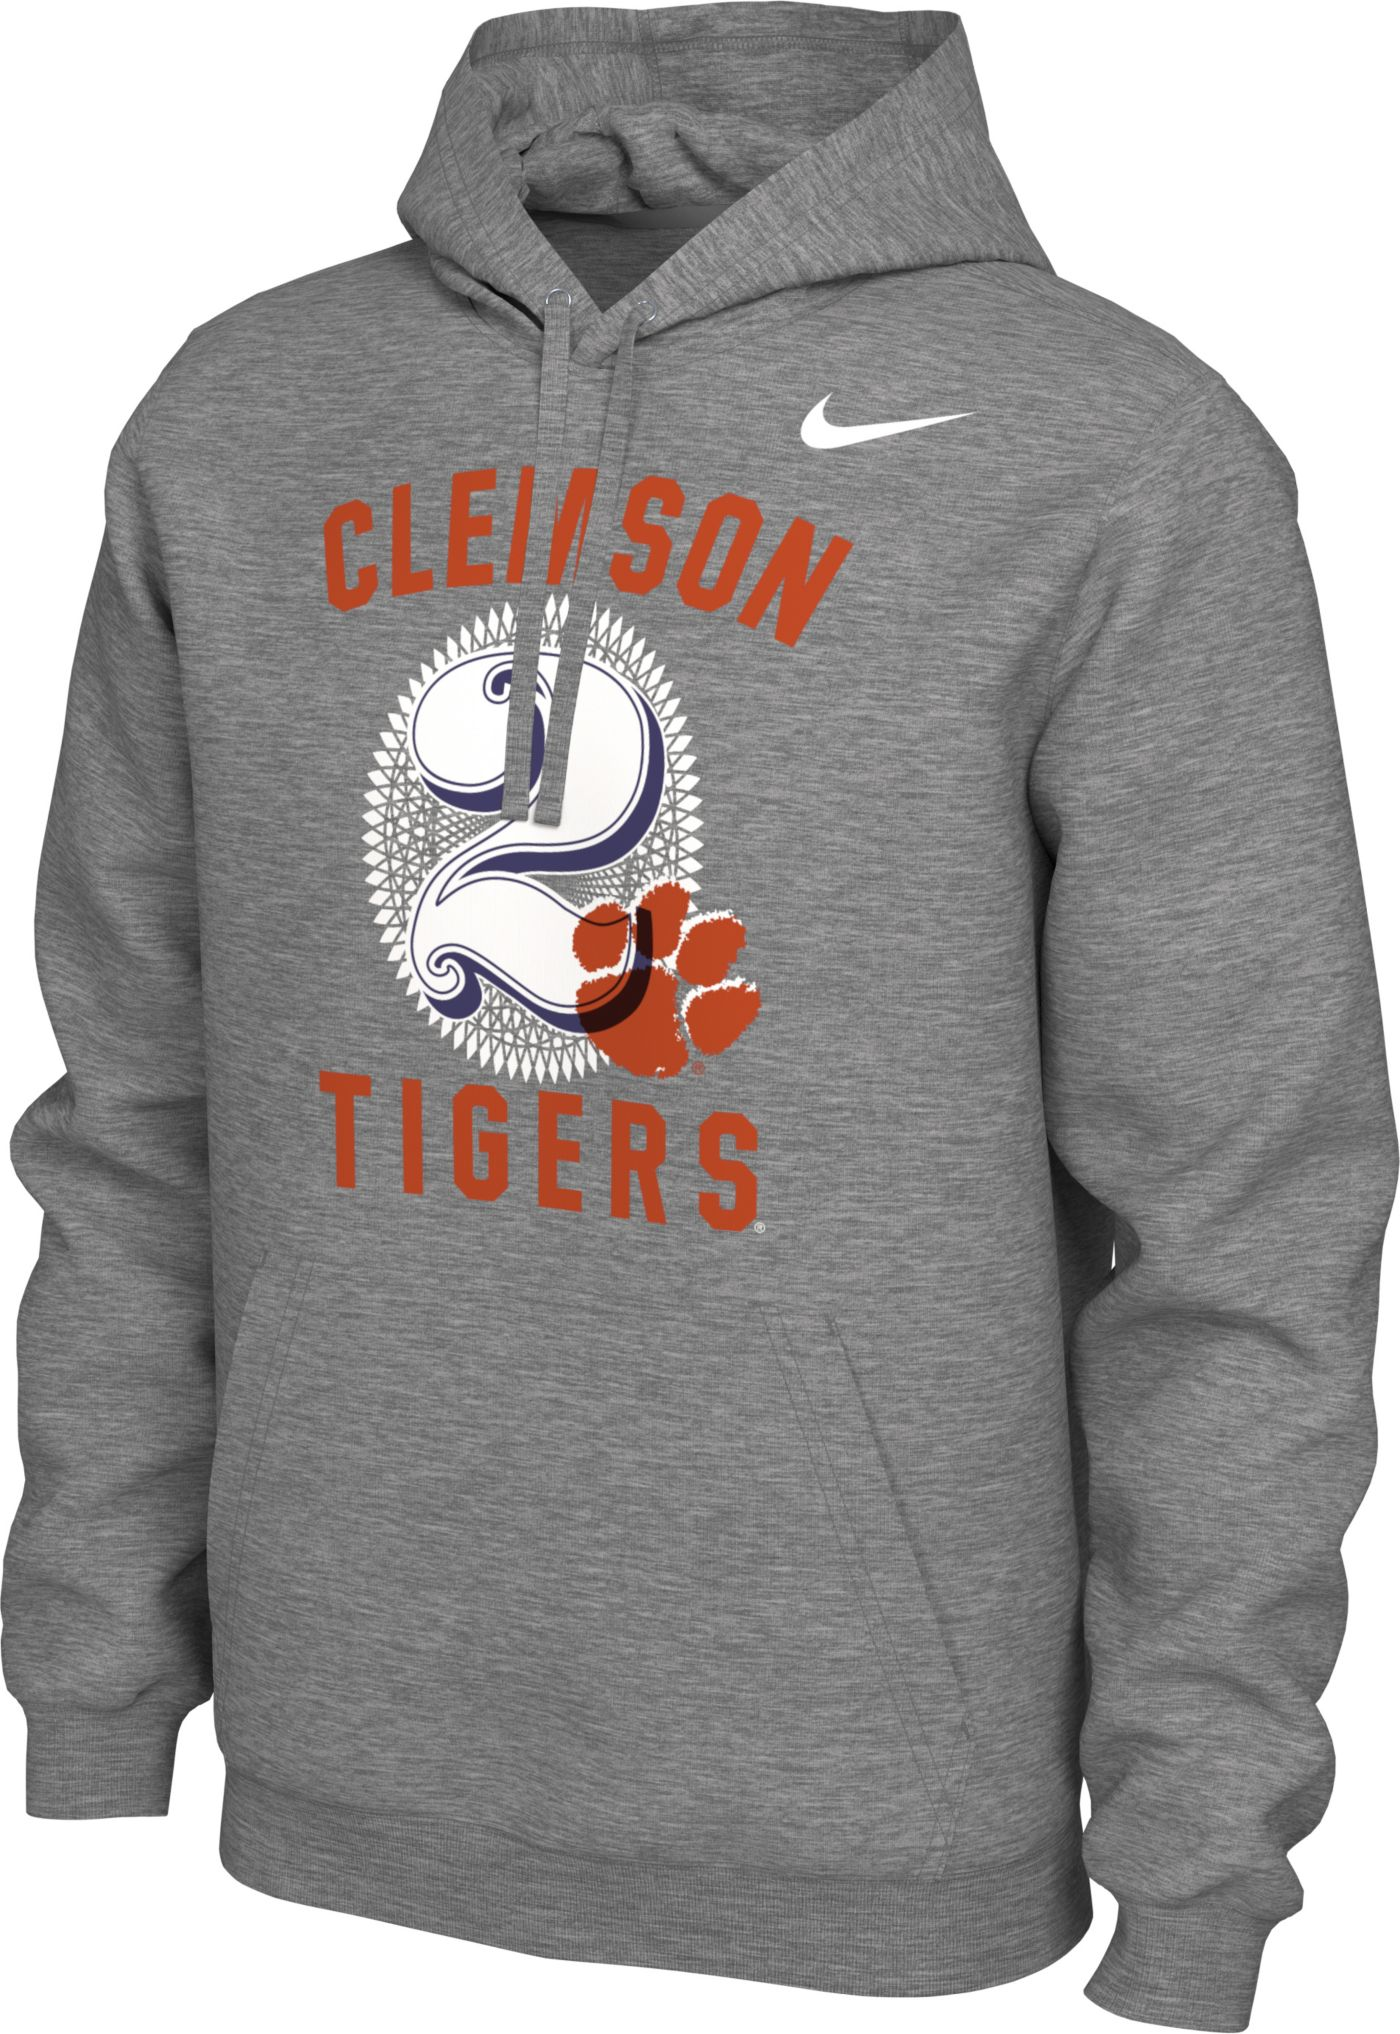 Nike Men's Clemson Tigers Grey '$2 Bill' Local Pullover Hoodie